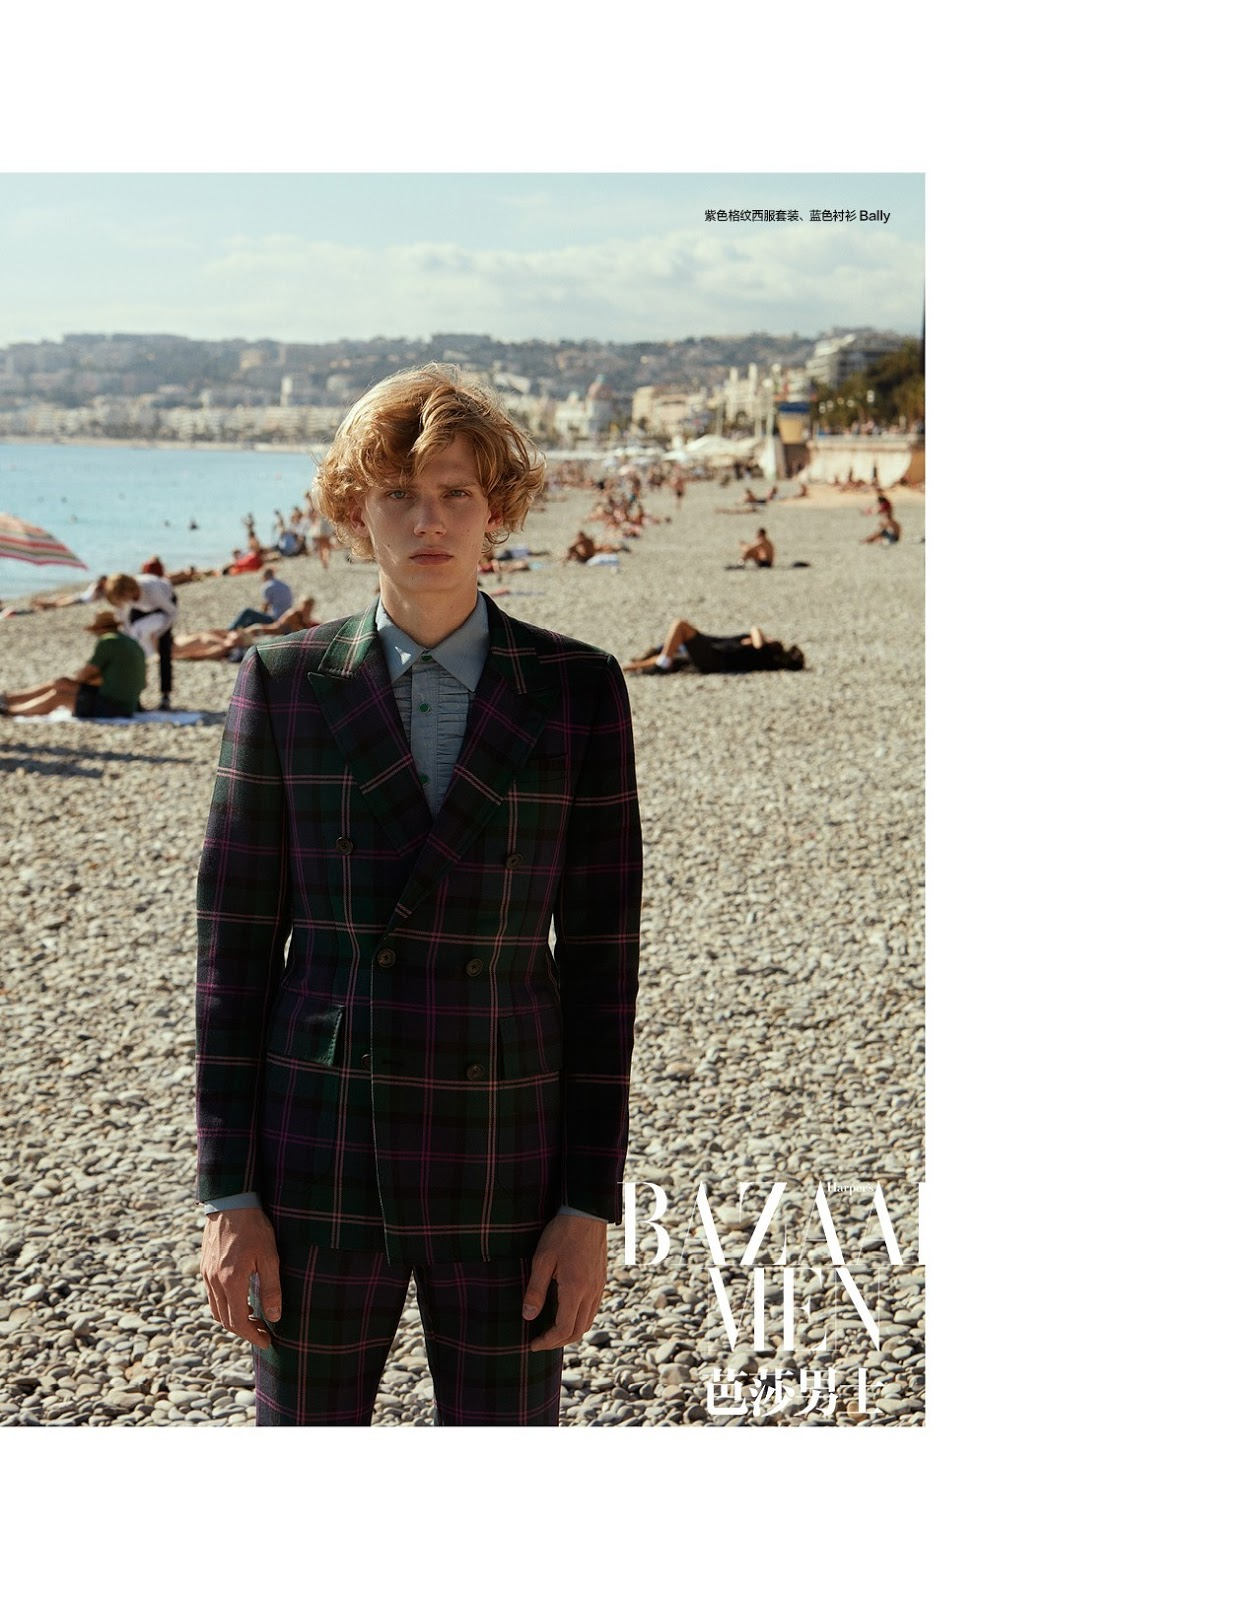 bazaar men Sophisticated, elegant and provocative, harper's bazaar is your source for fashion trends straight from the runway, makeup and hair inspiration, chic wedding and travel ideas, plus all of your movie, tv, and pop culture news.